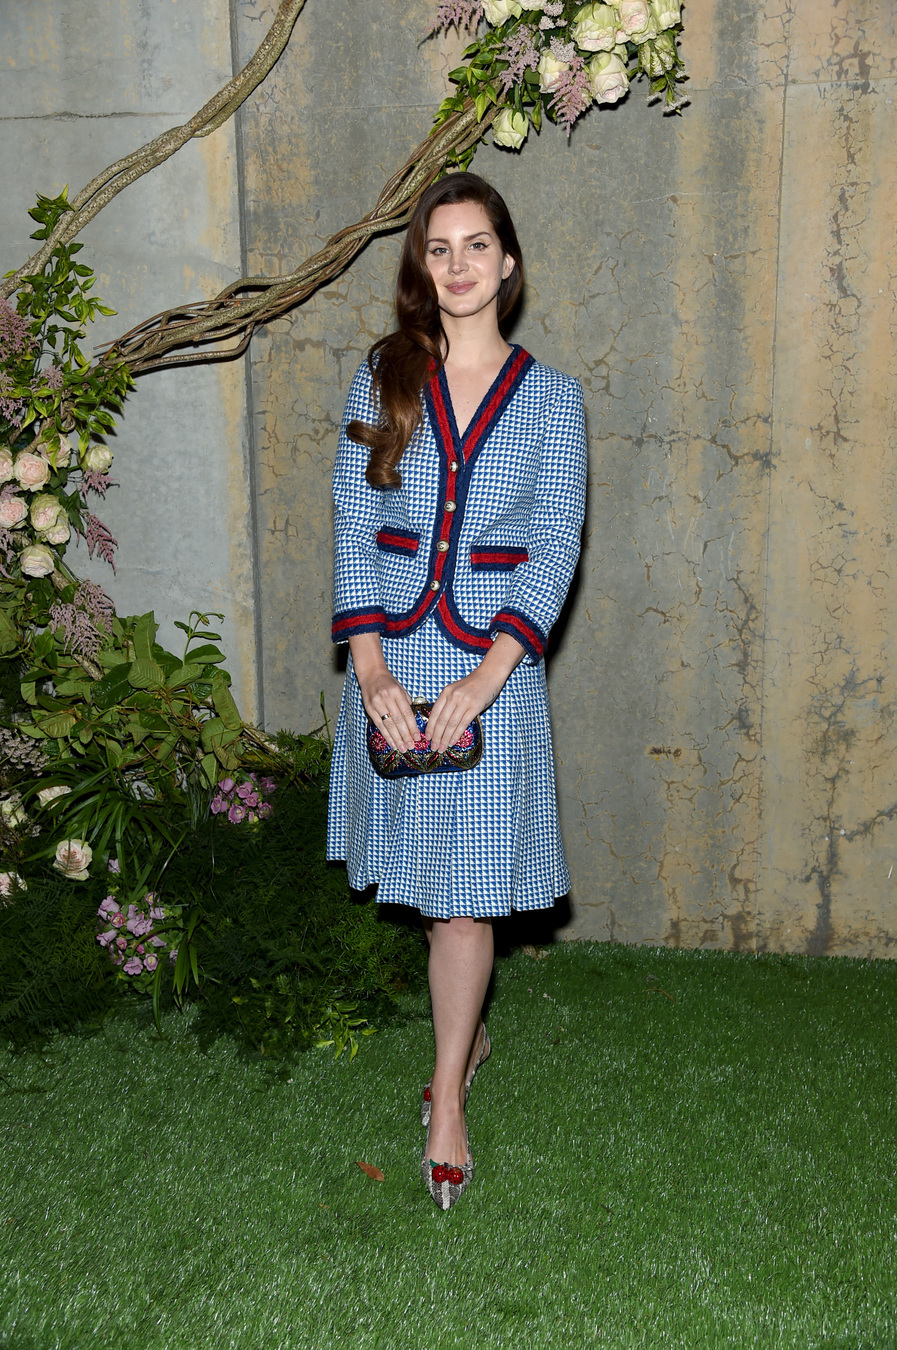 NEW YORK, NY - MAY 02: Singer Lana Del Ray attends the Gucci Bloom Fragrance Launch at MoMA PS.1 on May 2, 2017 in New York City. (Photo by Jamie McCarthy/Getty Images for Gucci)